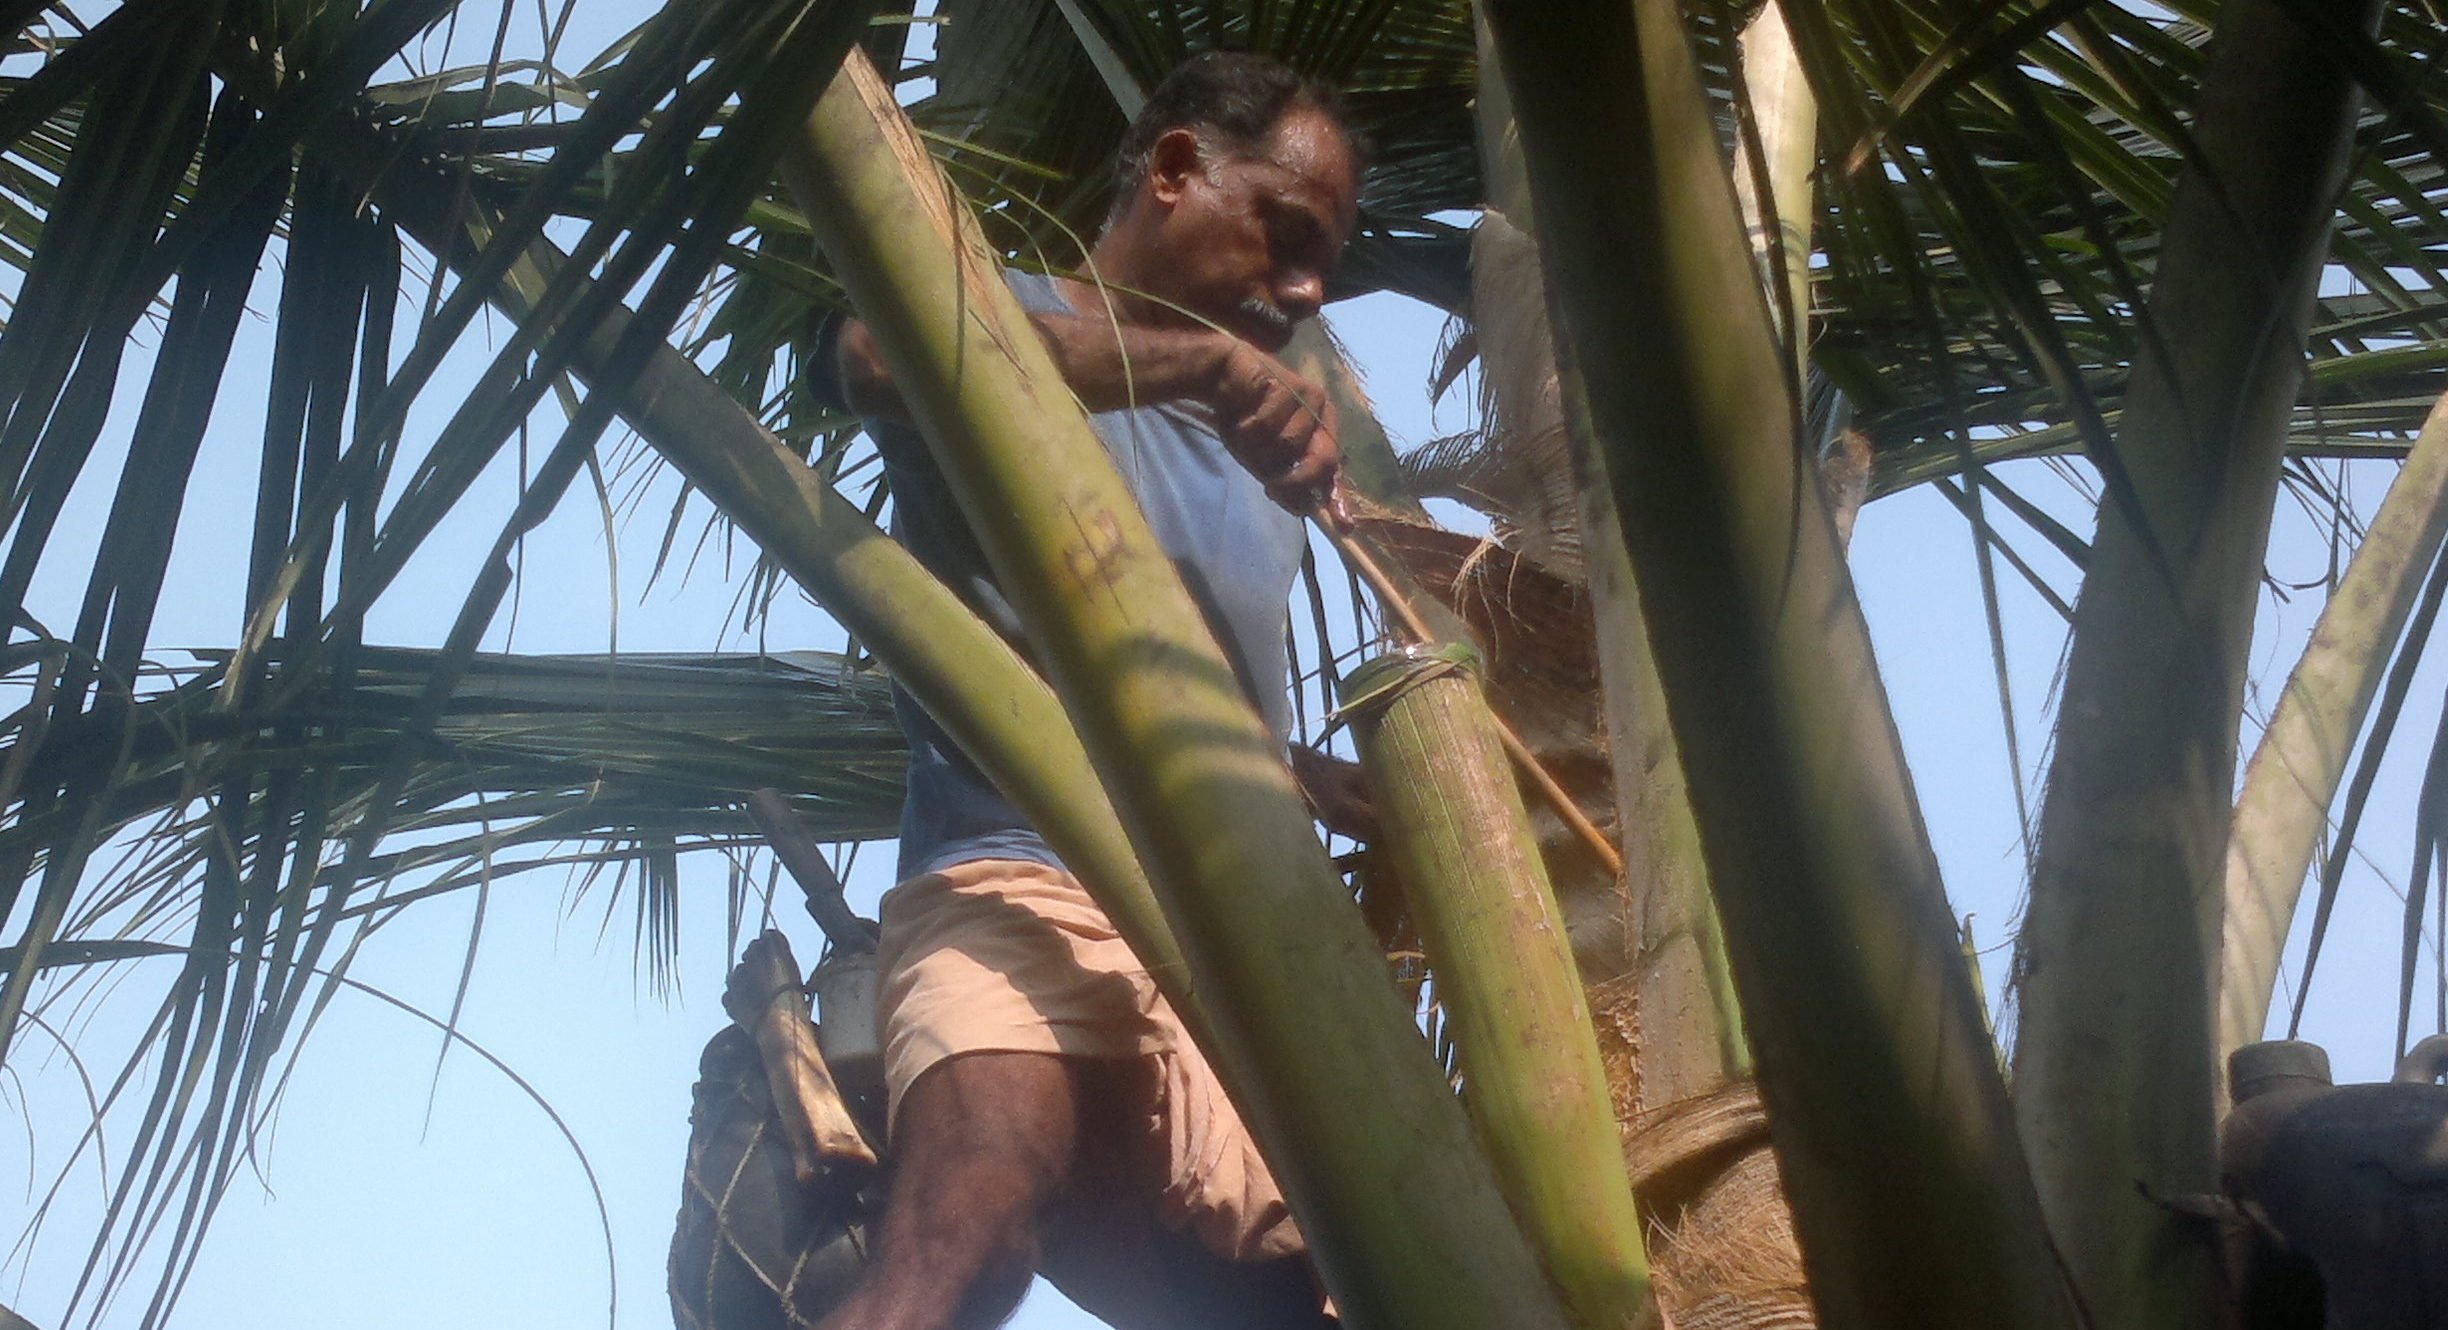 toddy tapping